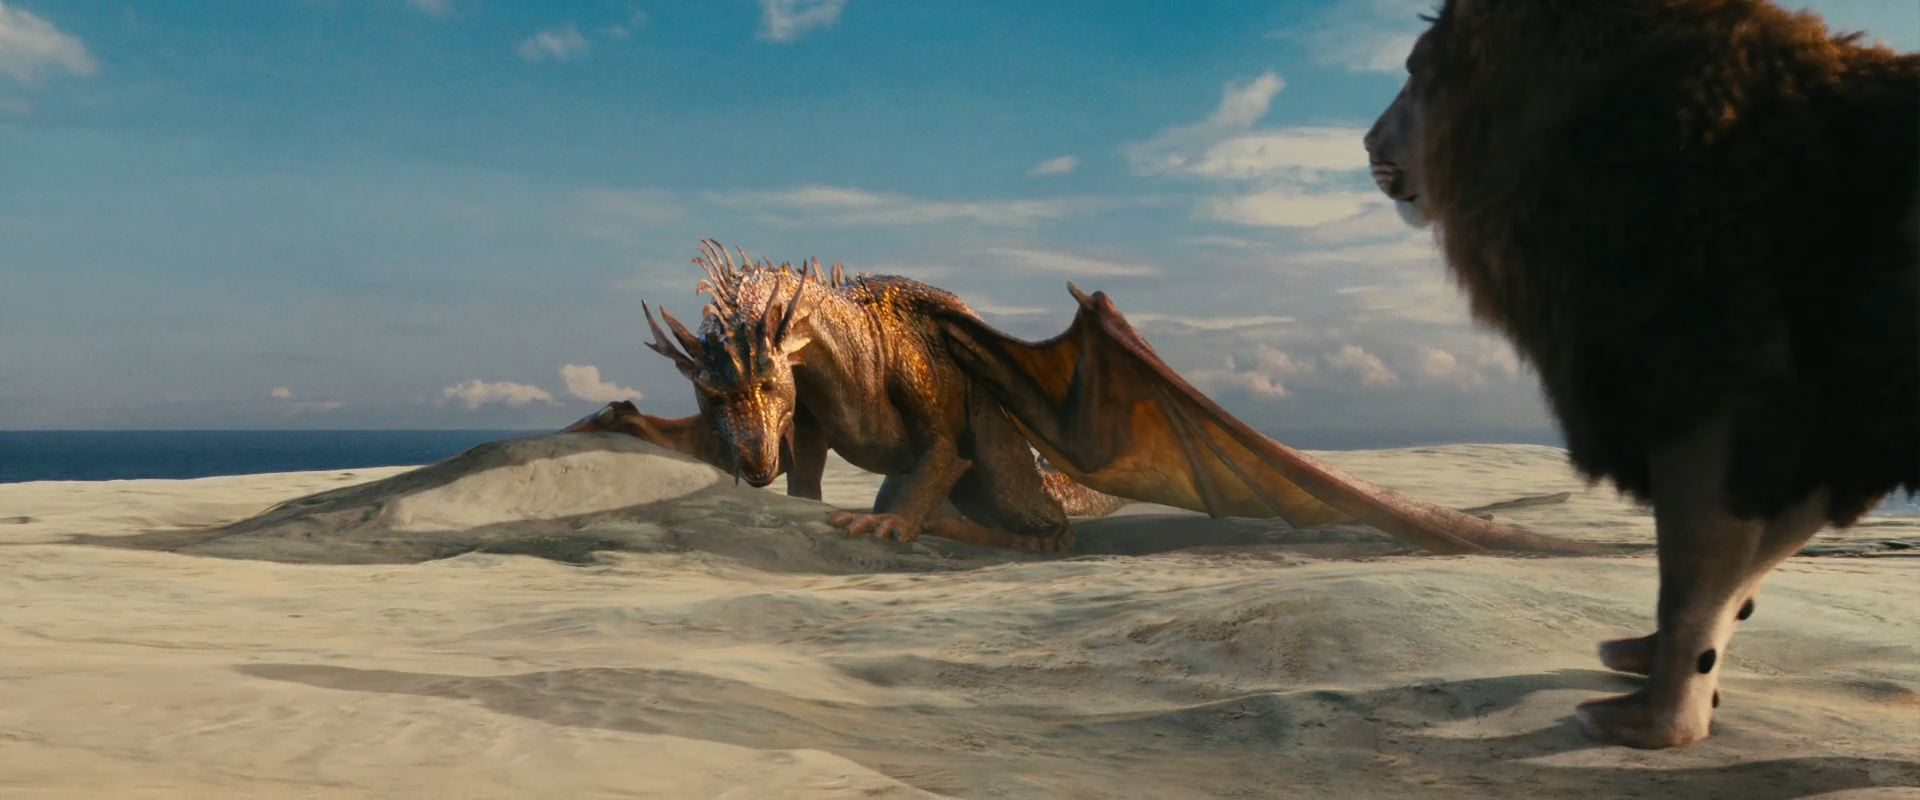 Dragon in Narnia